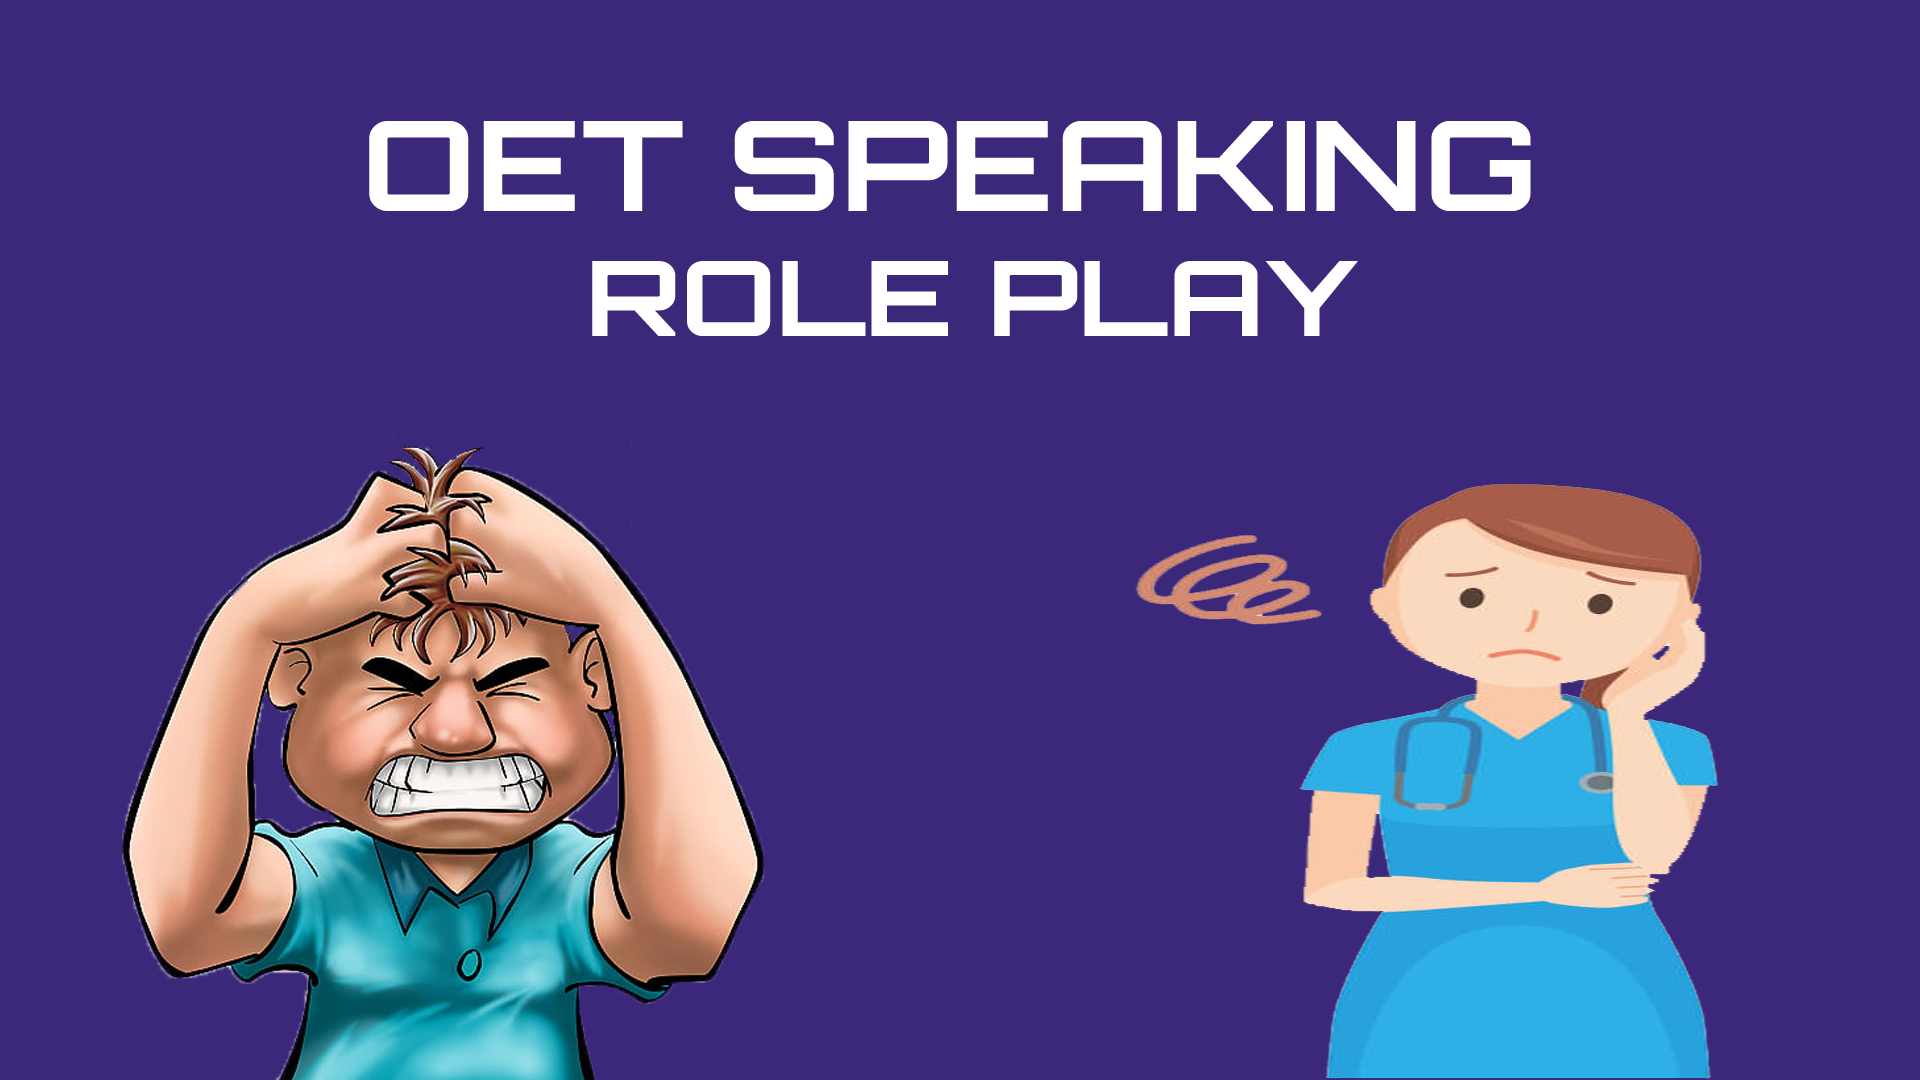 OET SPEAKING ROLE PLAY - NURSING - AGITATED PATIENT